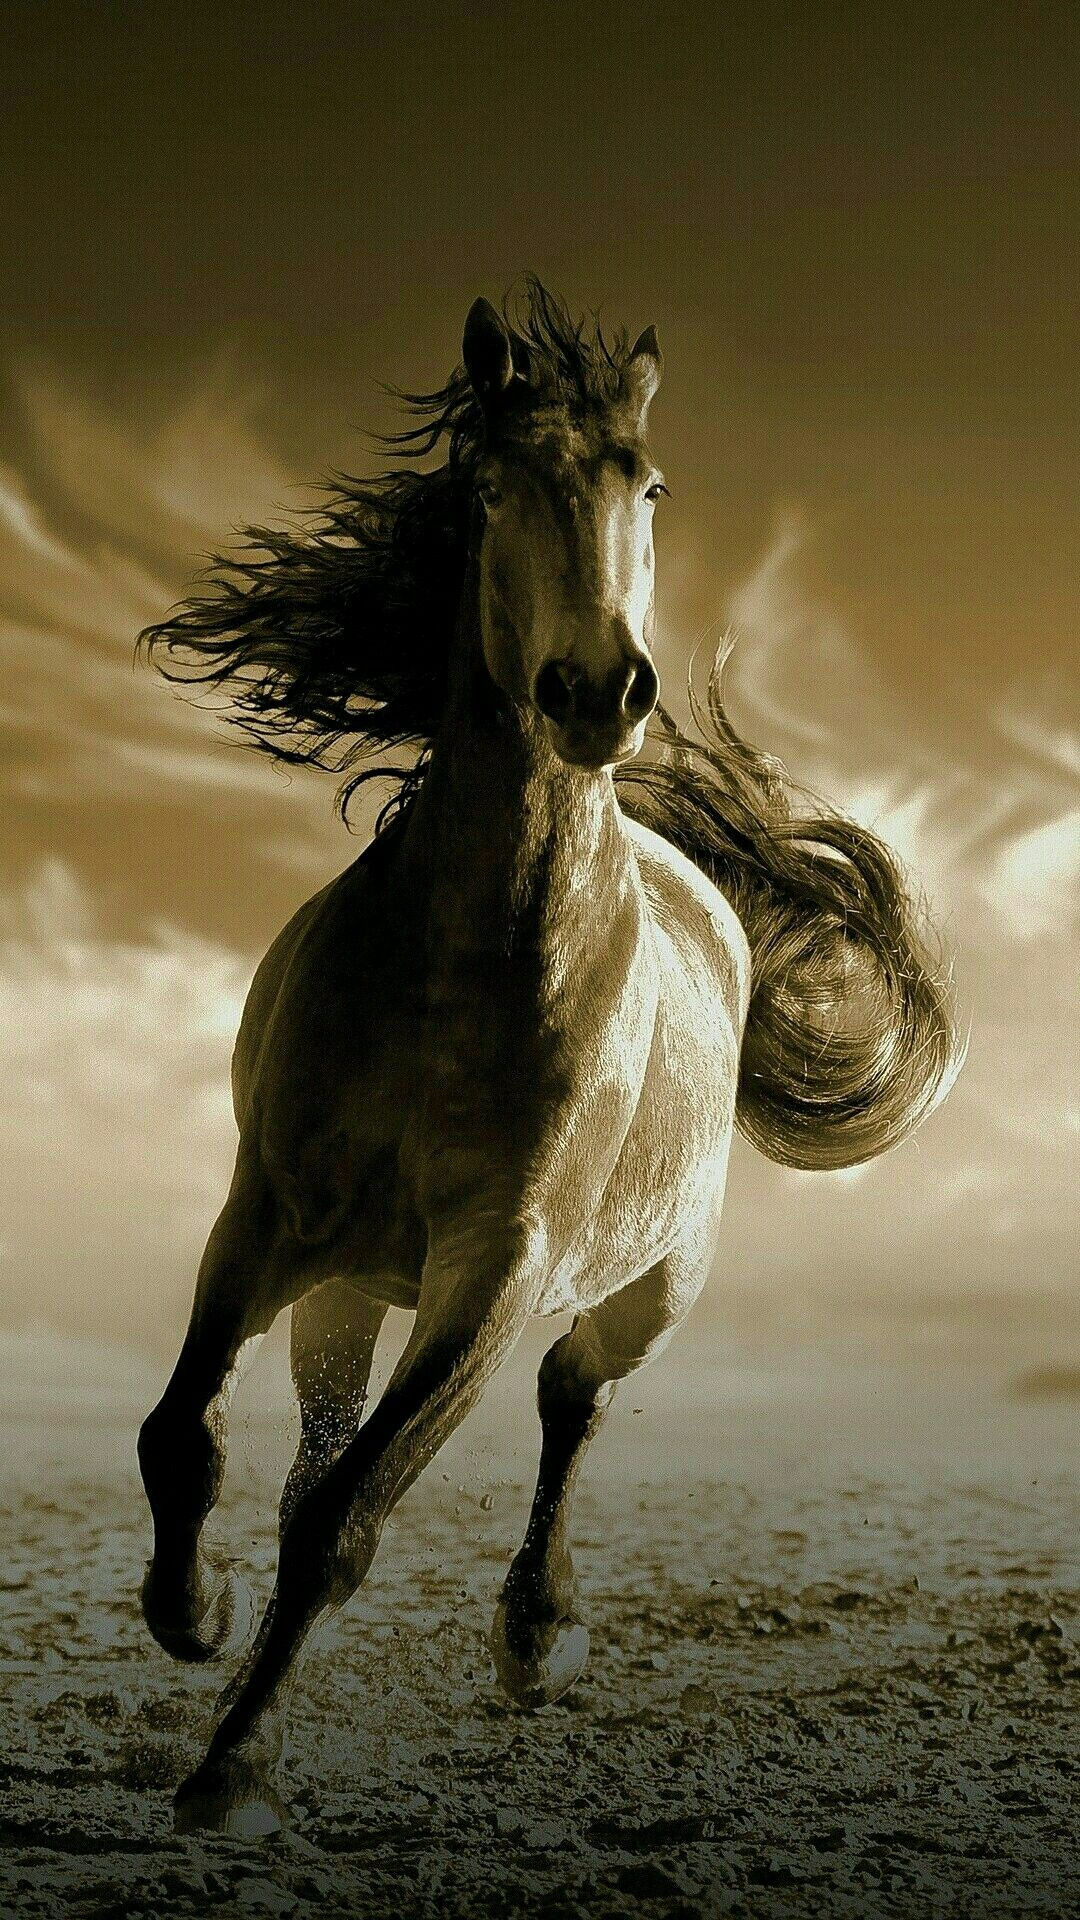 Best Wallpaper Horse Iphone - ad12b5f4212be5ab4a4ab0c73b8dee03  Perfect Image Reference_68467.jpg